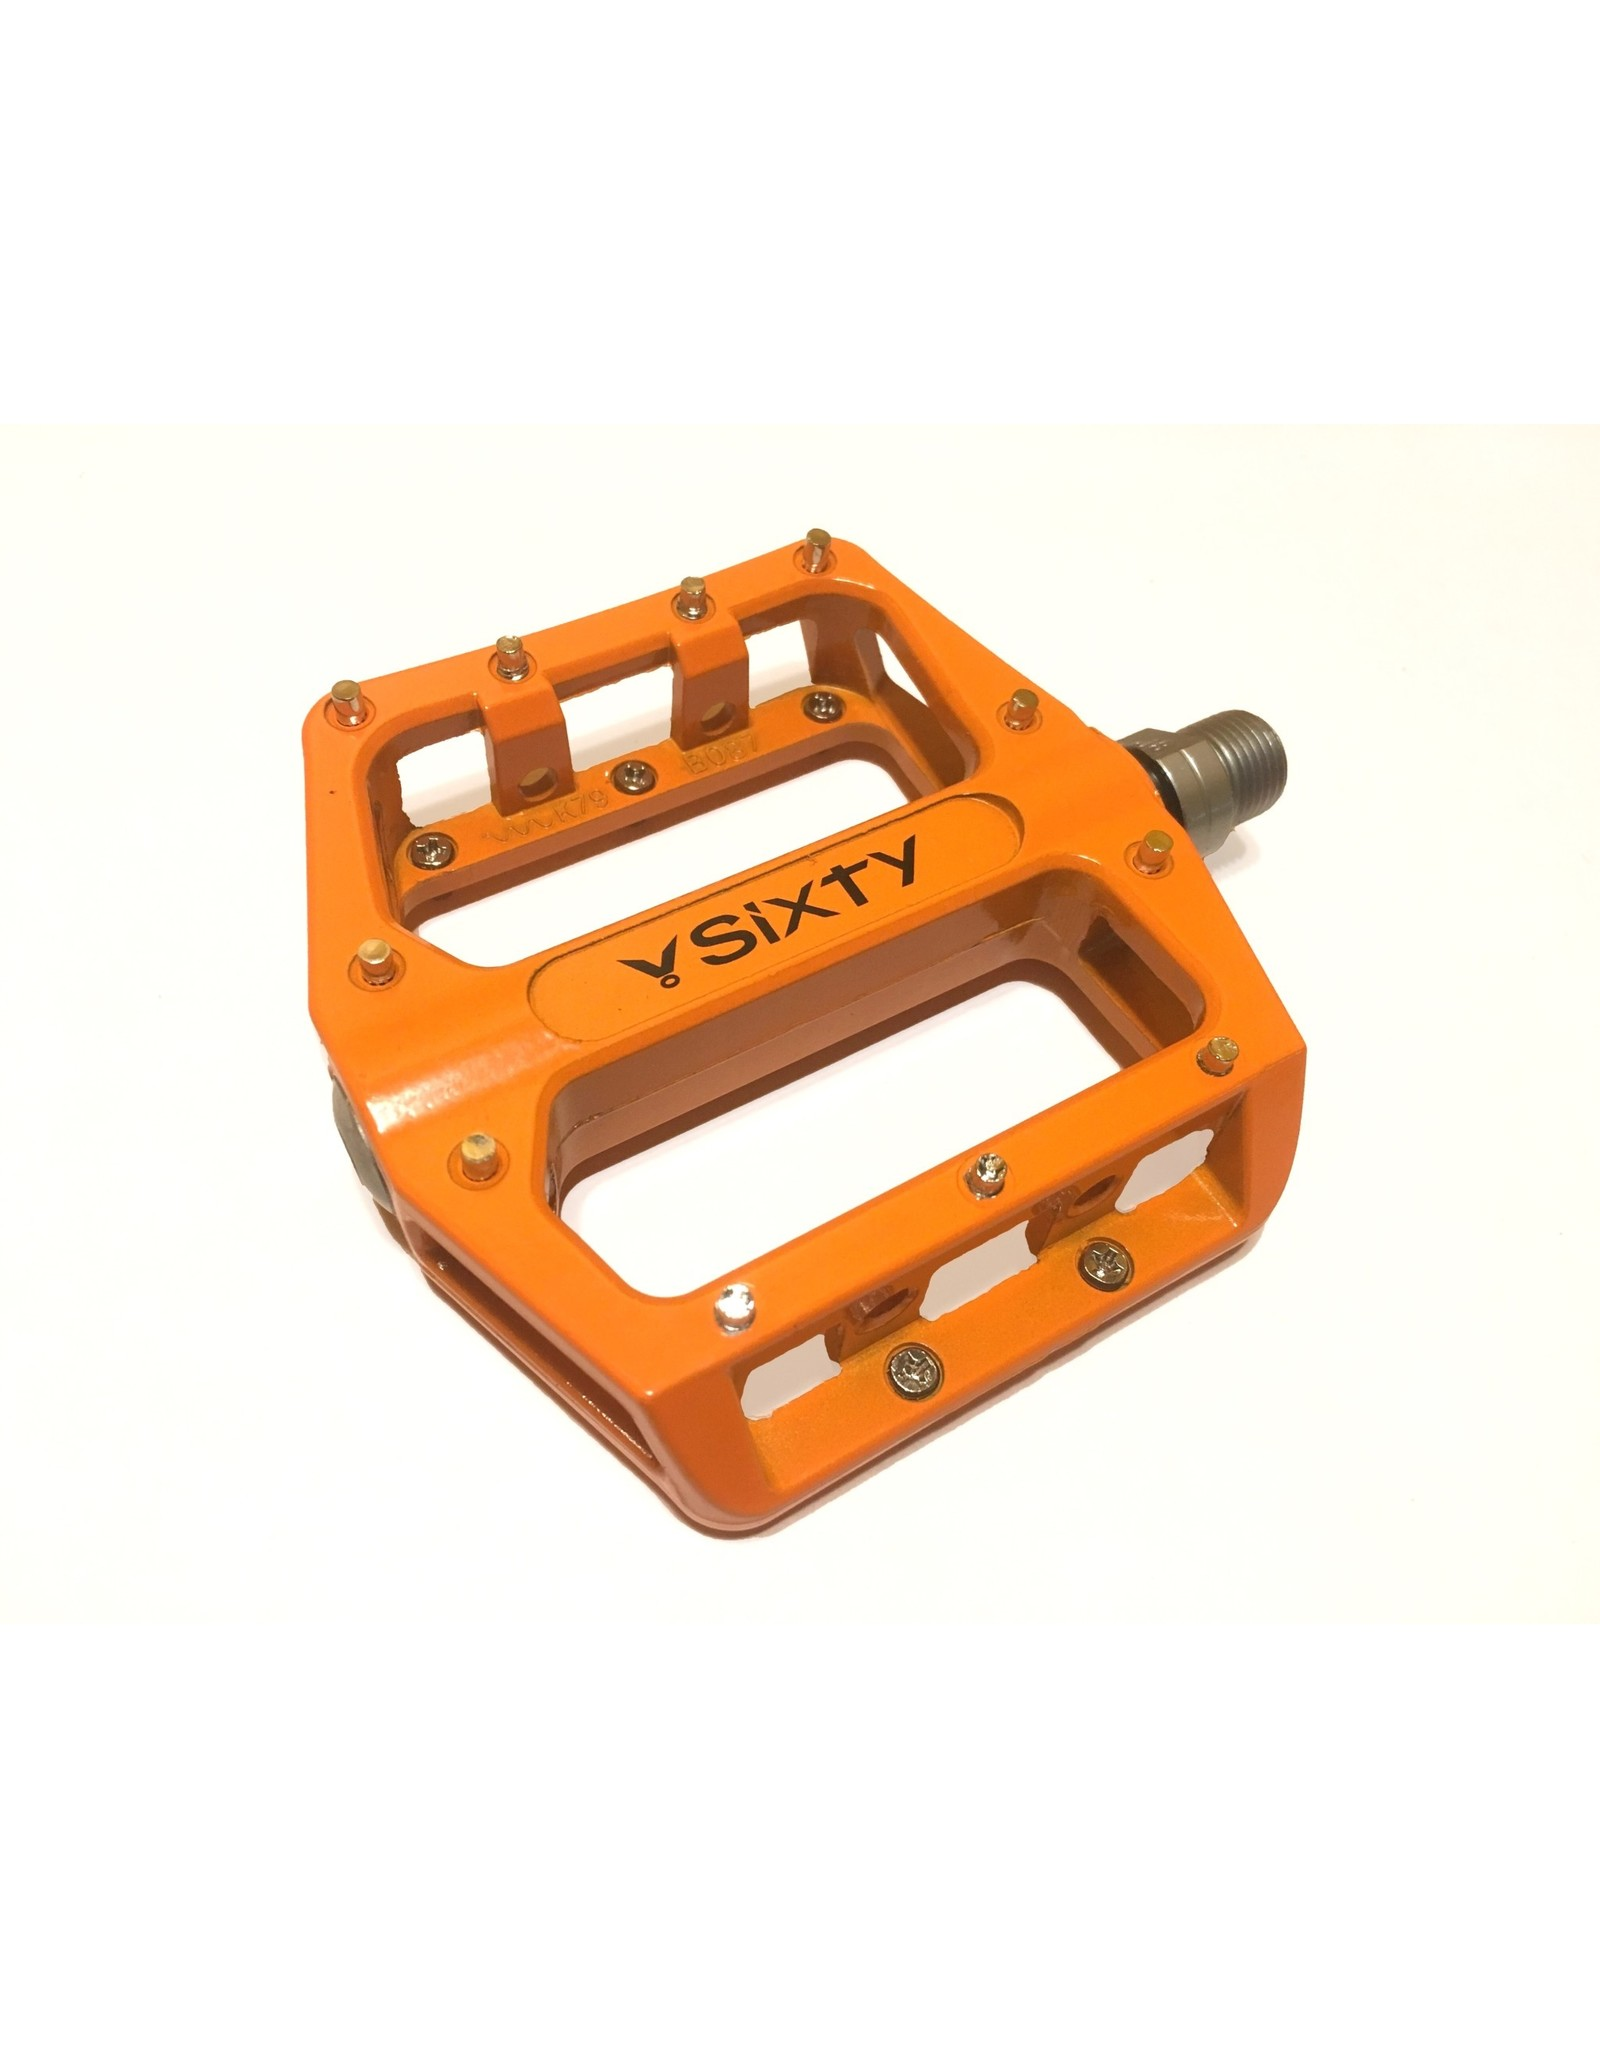 V-Sixty V-Sixty B-87 Sealed Bearing Pedals